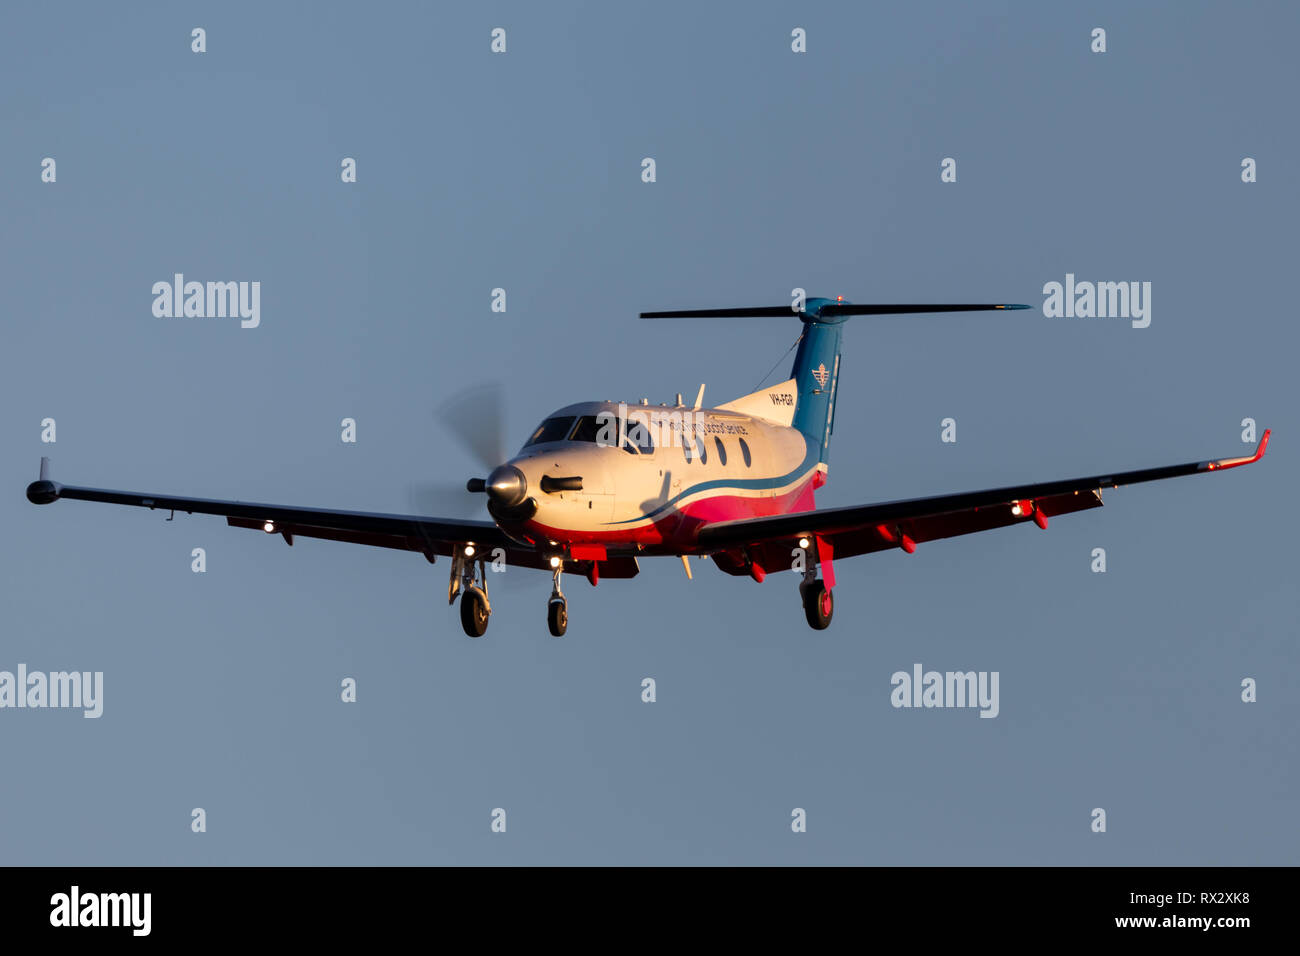 Royal Flying Doctors Service of Australia Pilatus PC-12 single engine air ambulance aircraft on approach to land at Adelaide Airport. - Stock Image